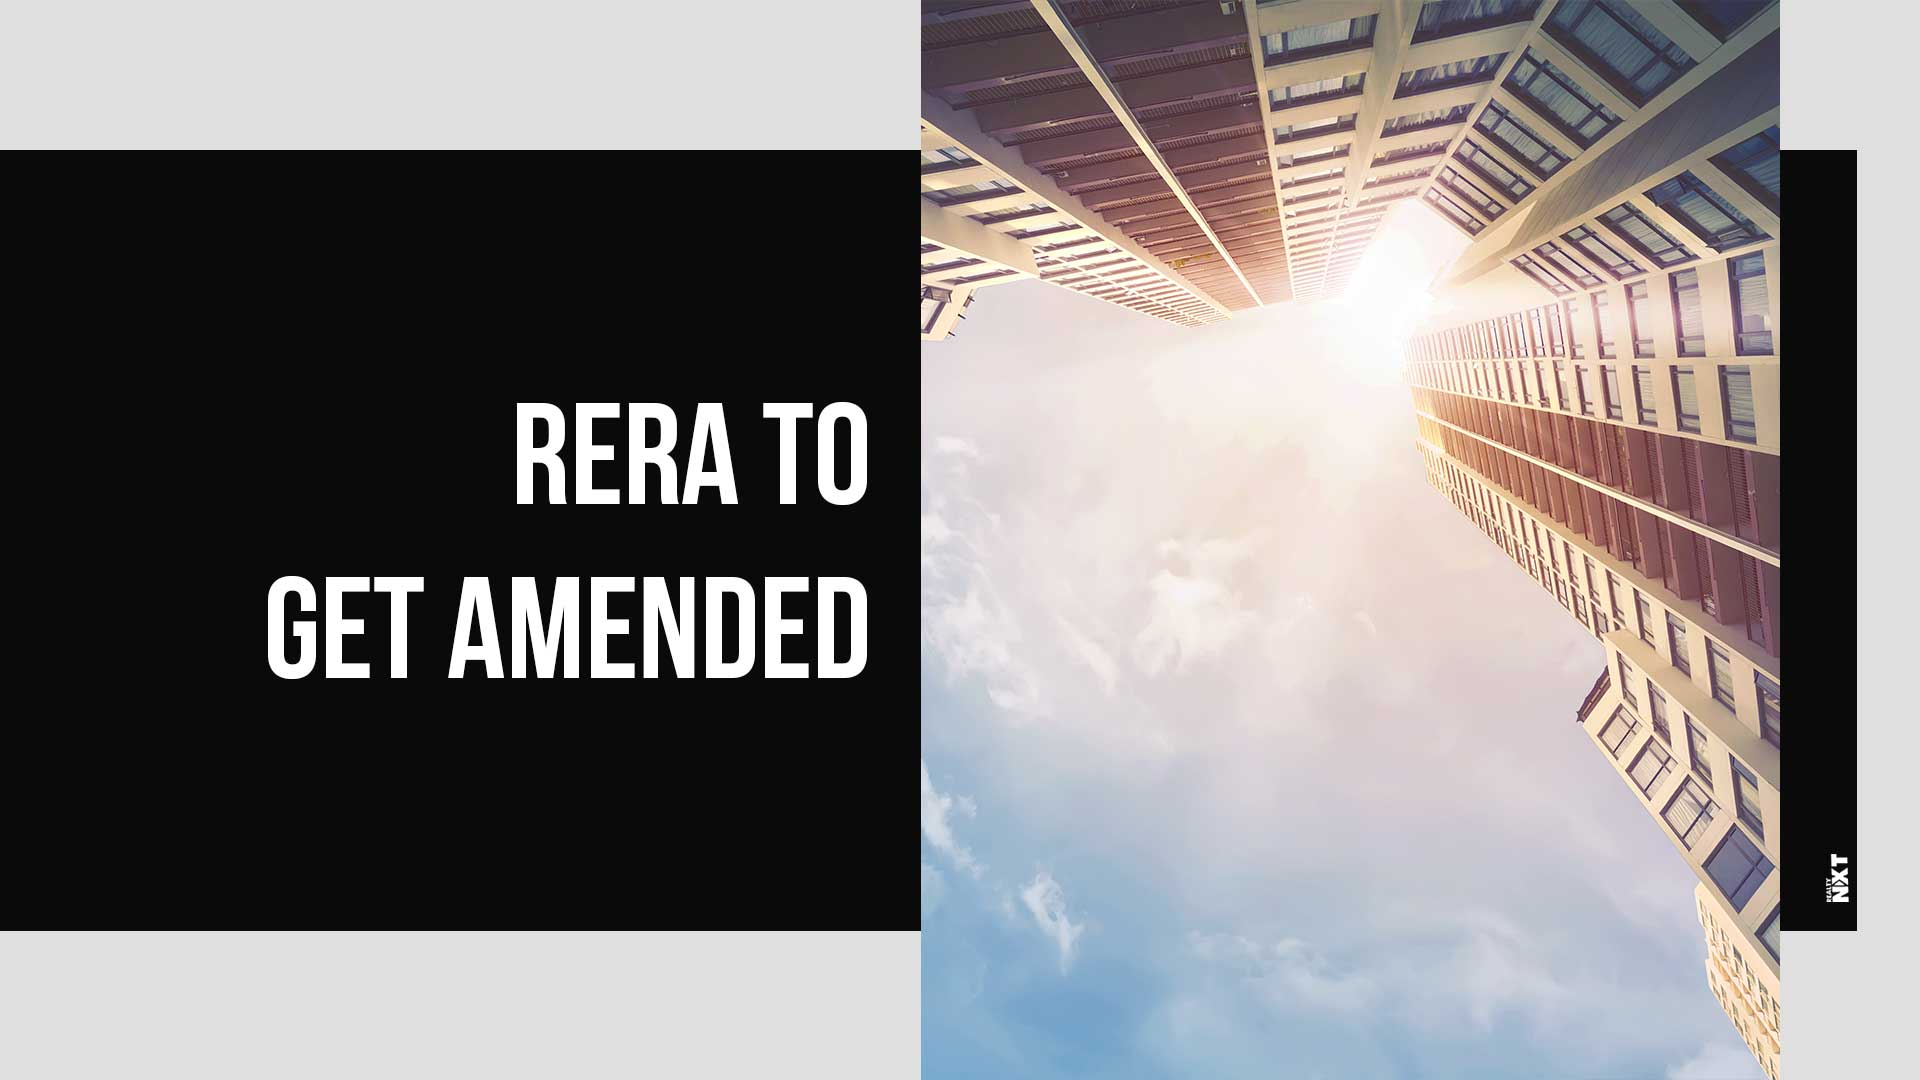 RERA Set To Emerge As More Effective Post Update